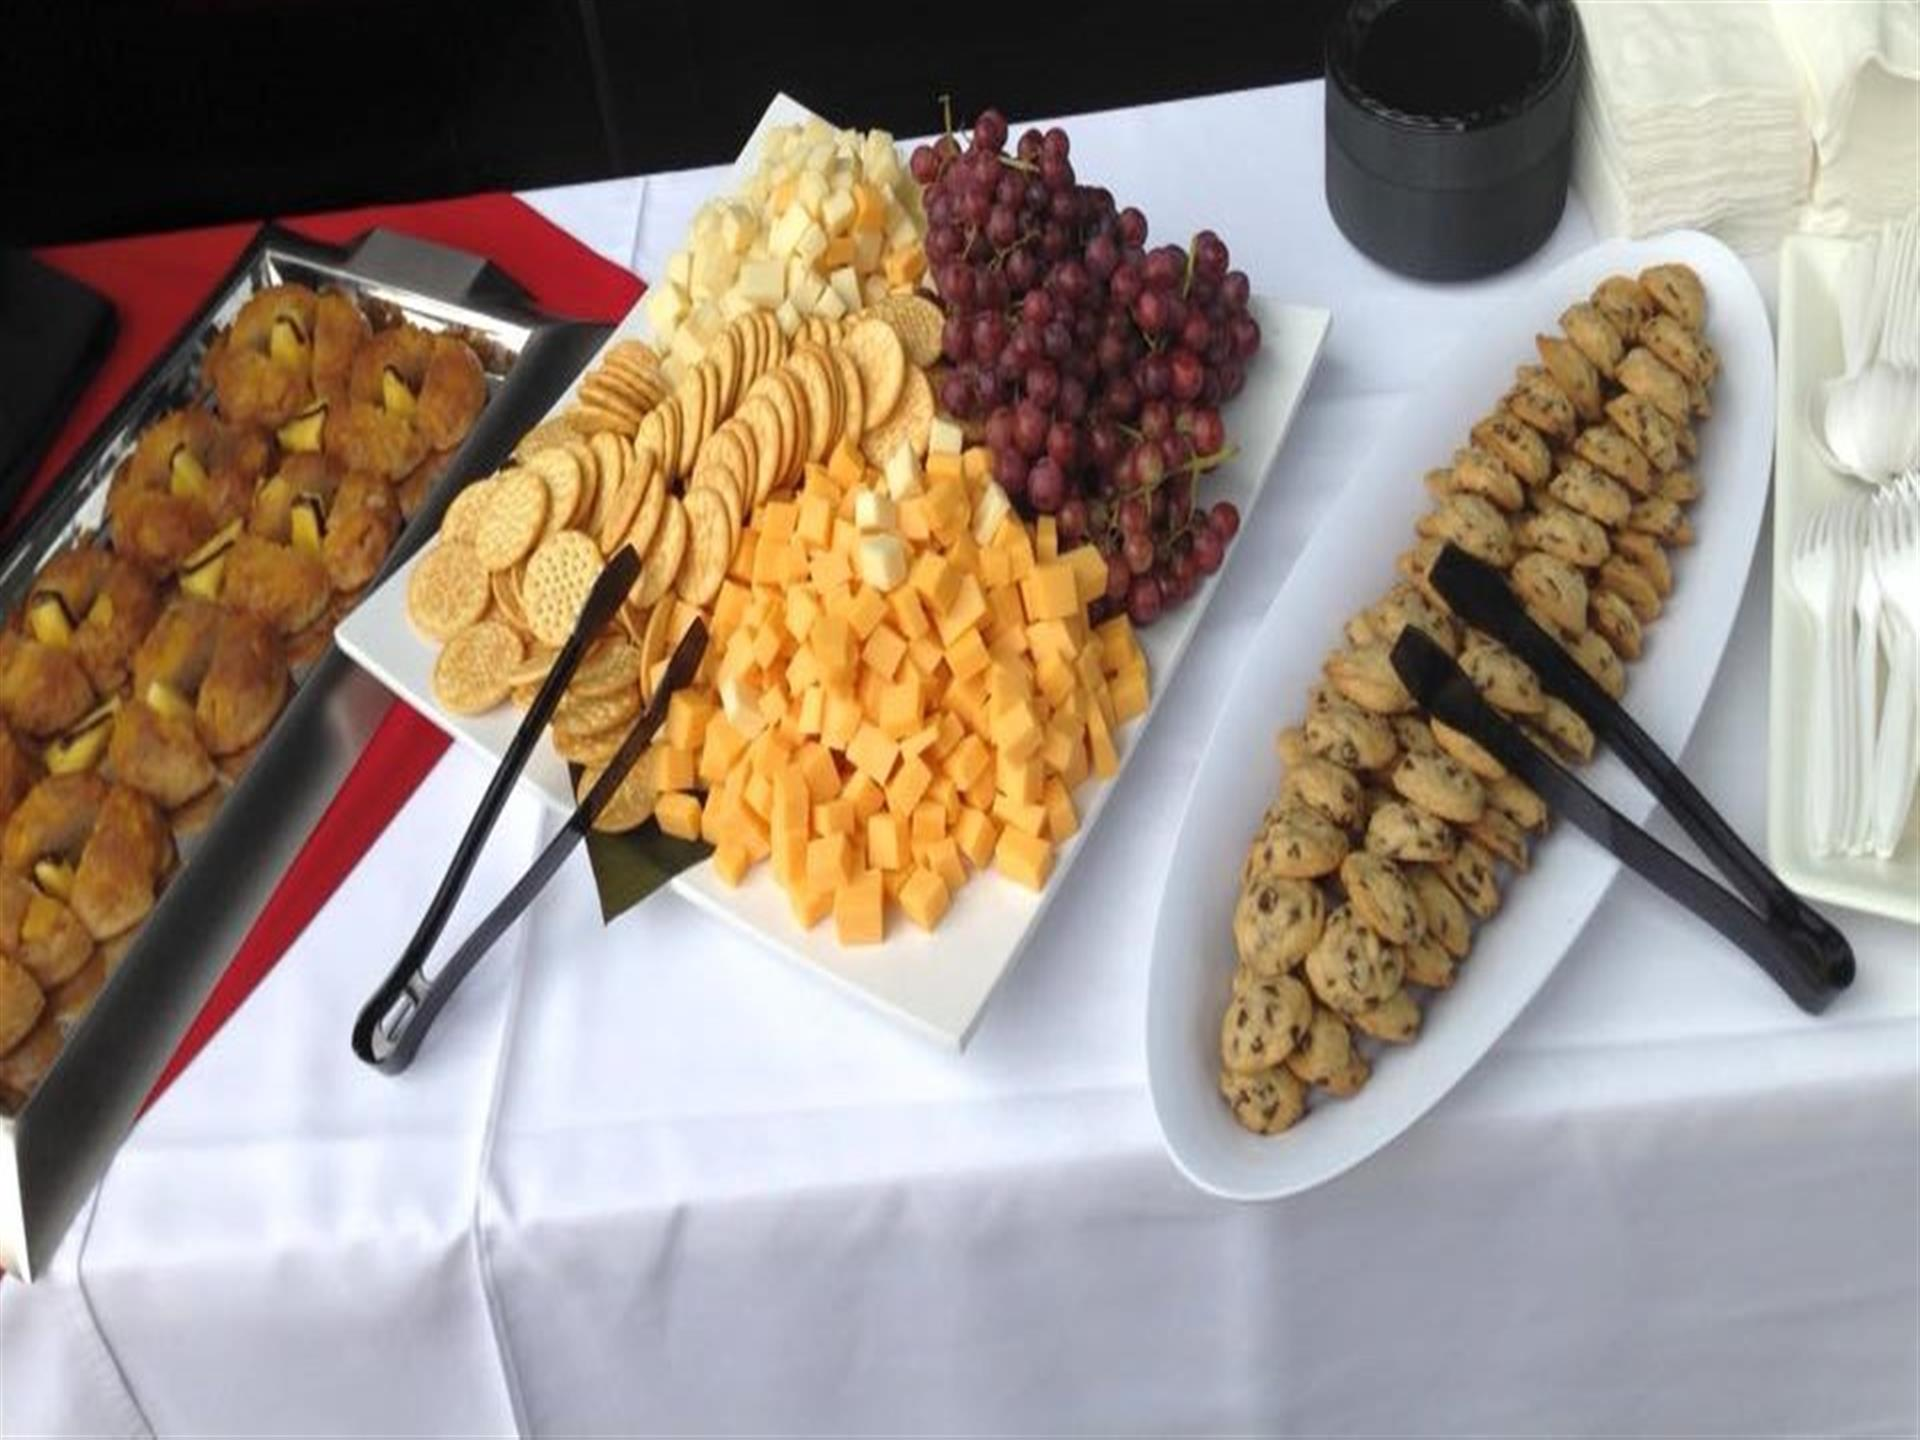 Trays of chocolate chip cookies, crackers, grapes and cheese